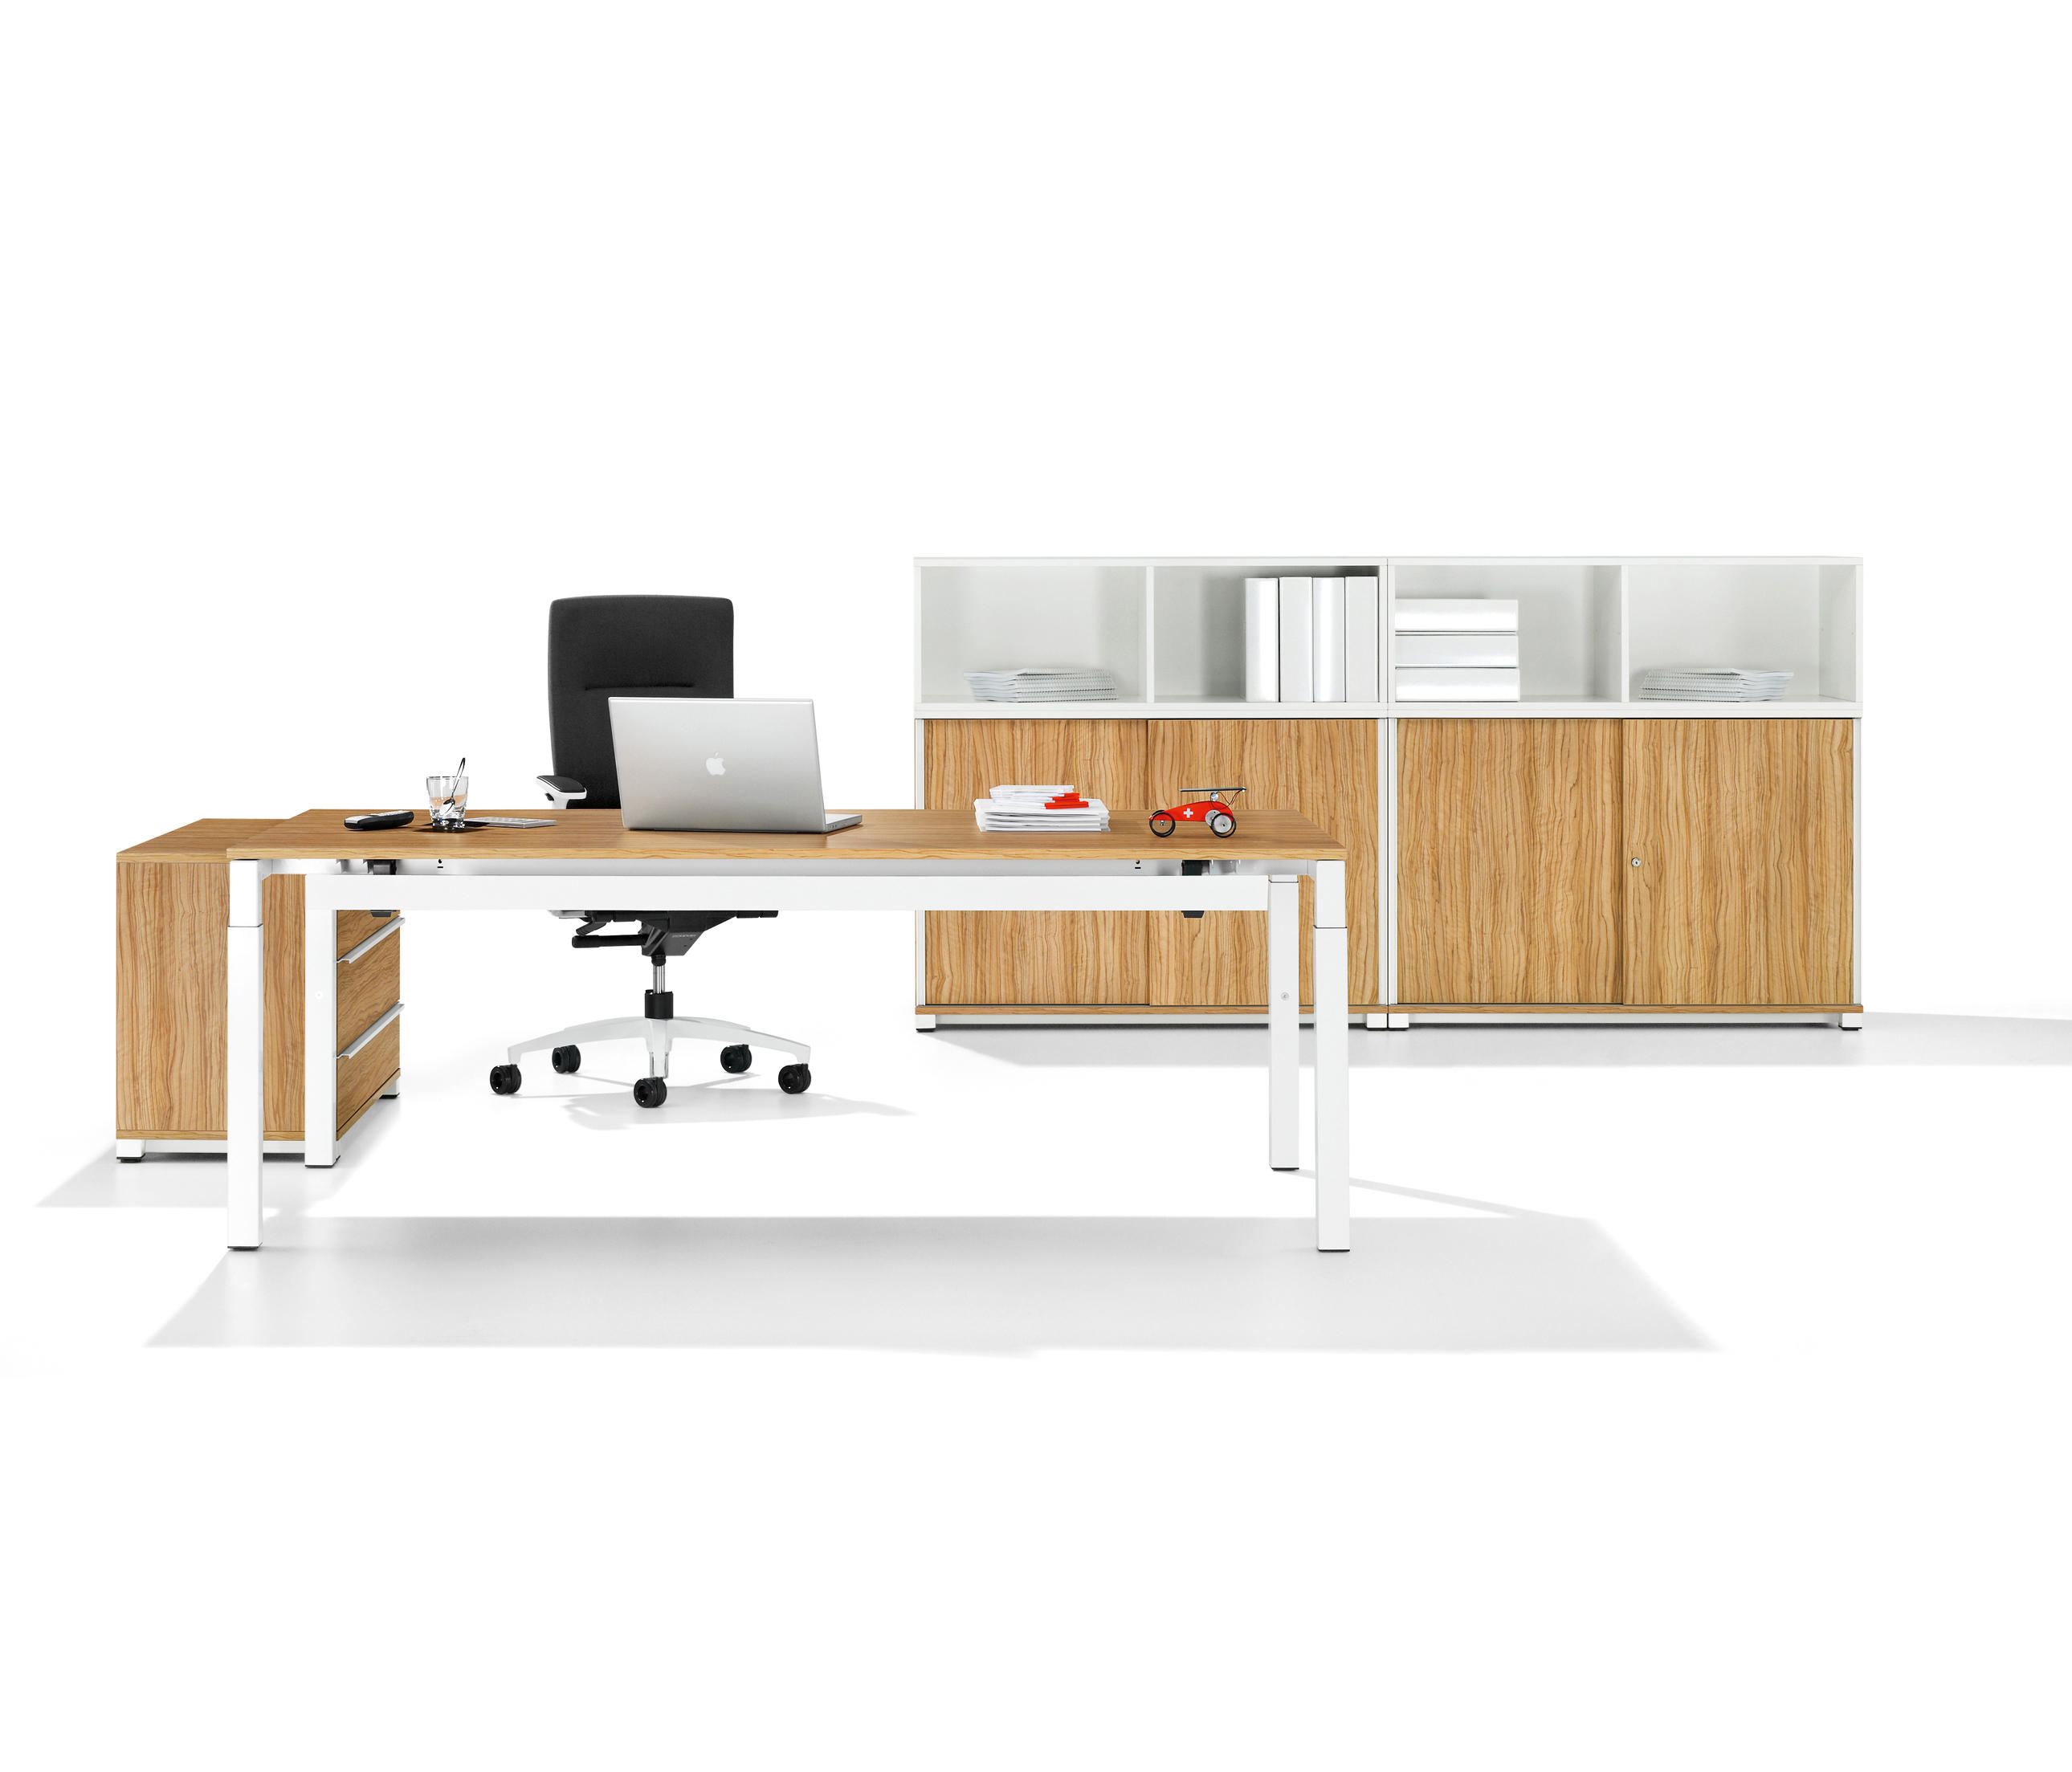 WINEA ECO - Individual desks from WINI Büromöbel | Architonic